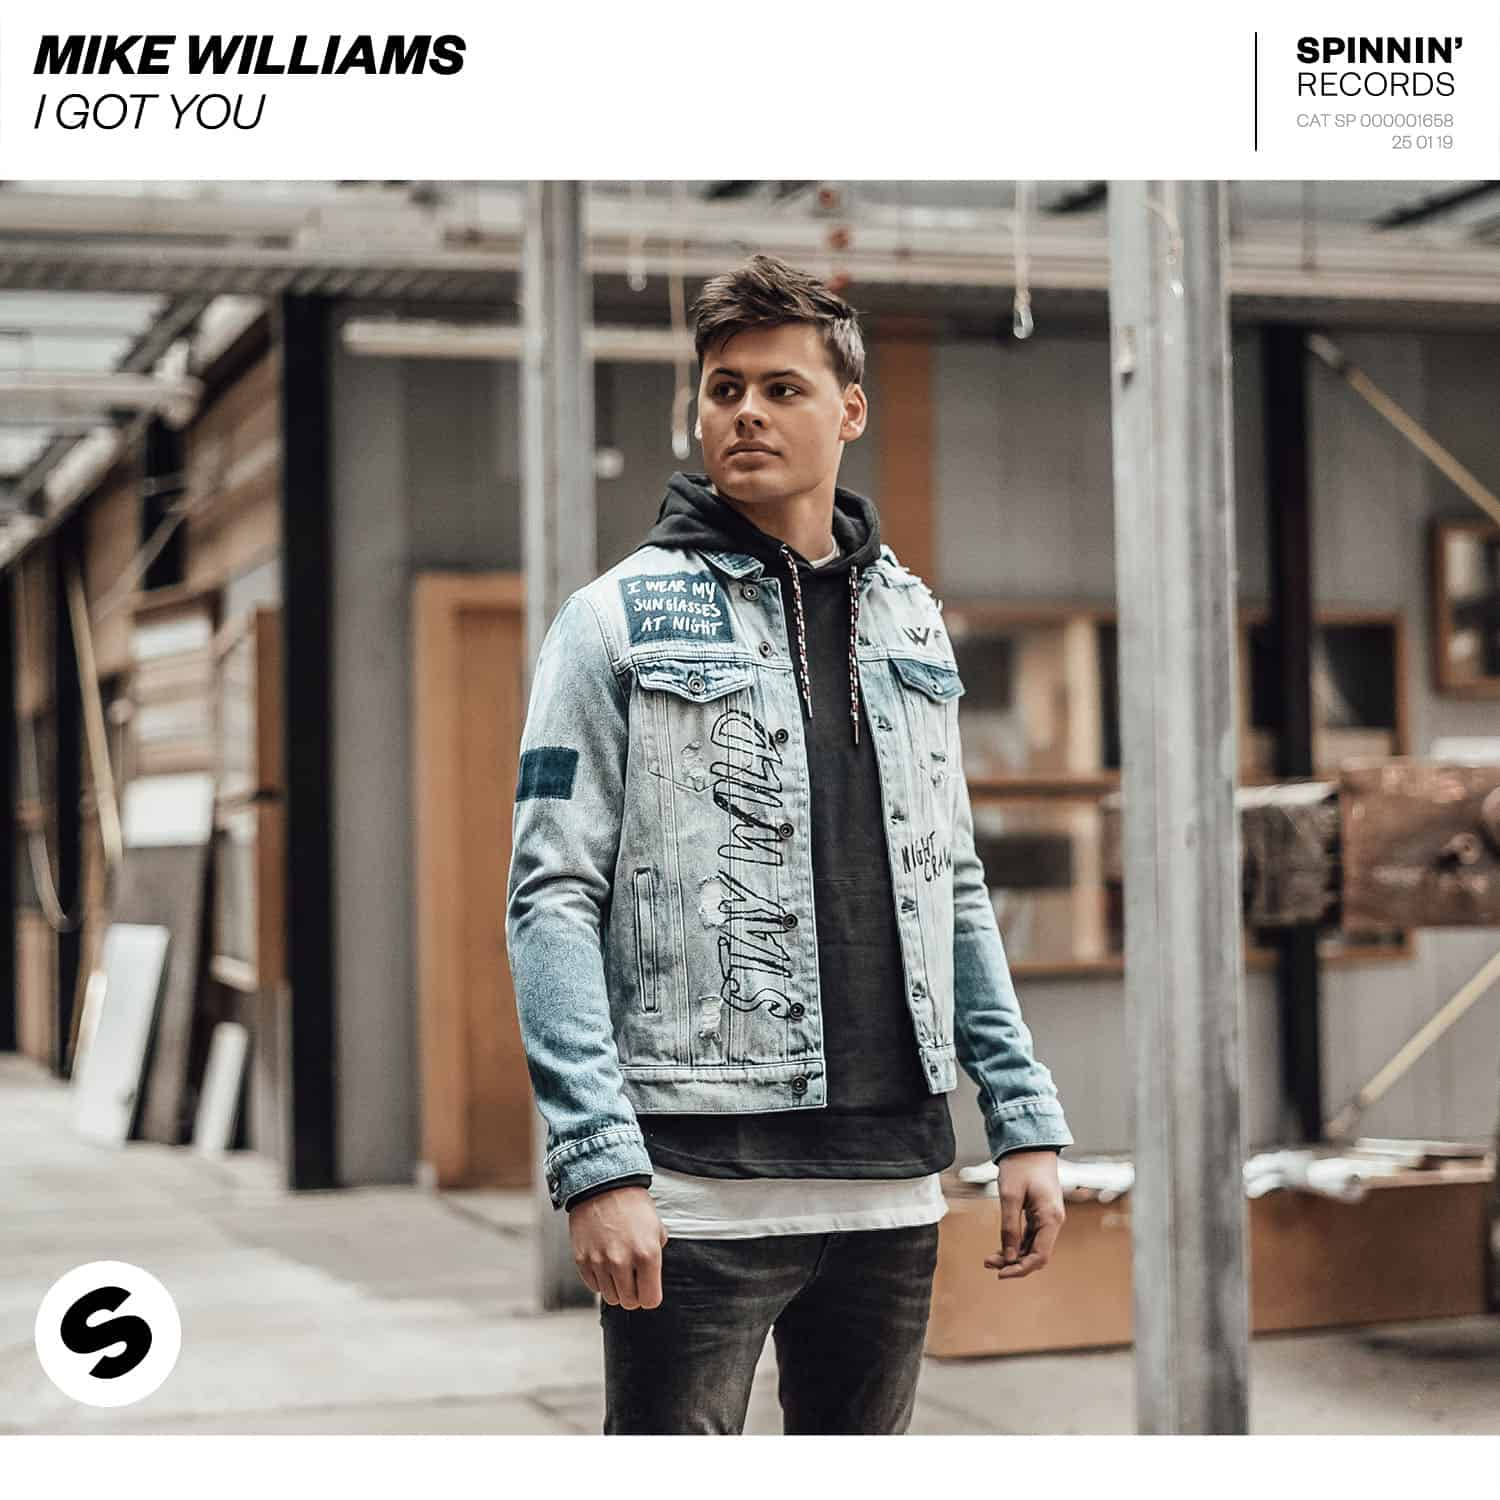 Mike Williams says 'I Got You' on Spinnin' Records